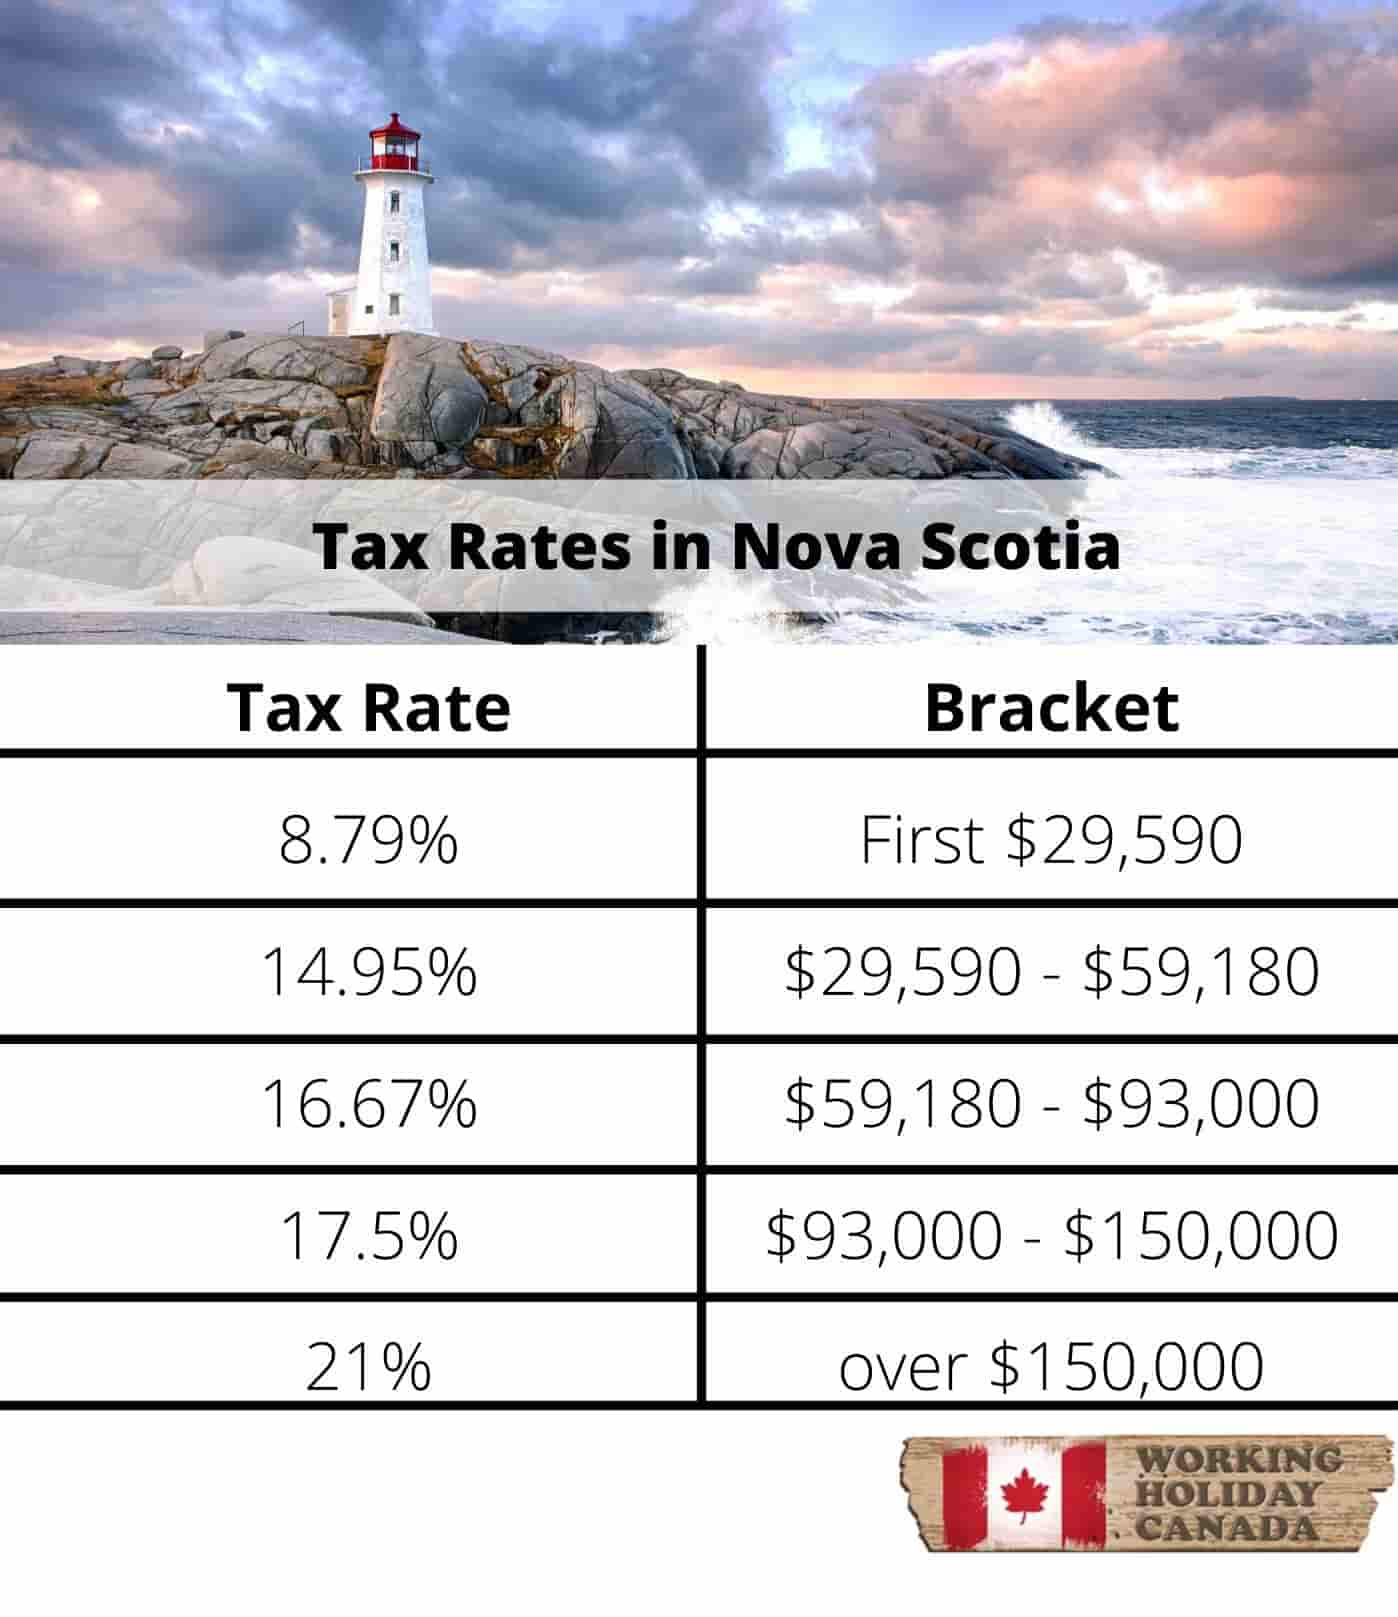 Nova Scotia tax brackets